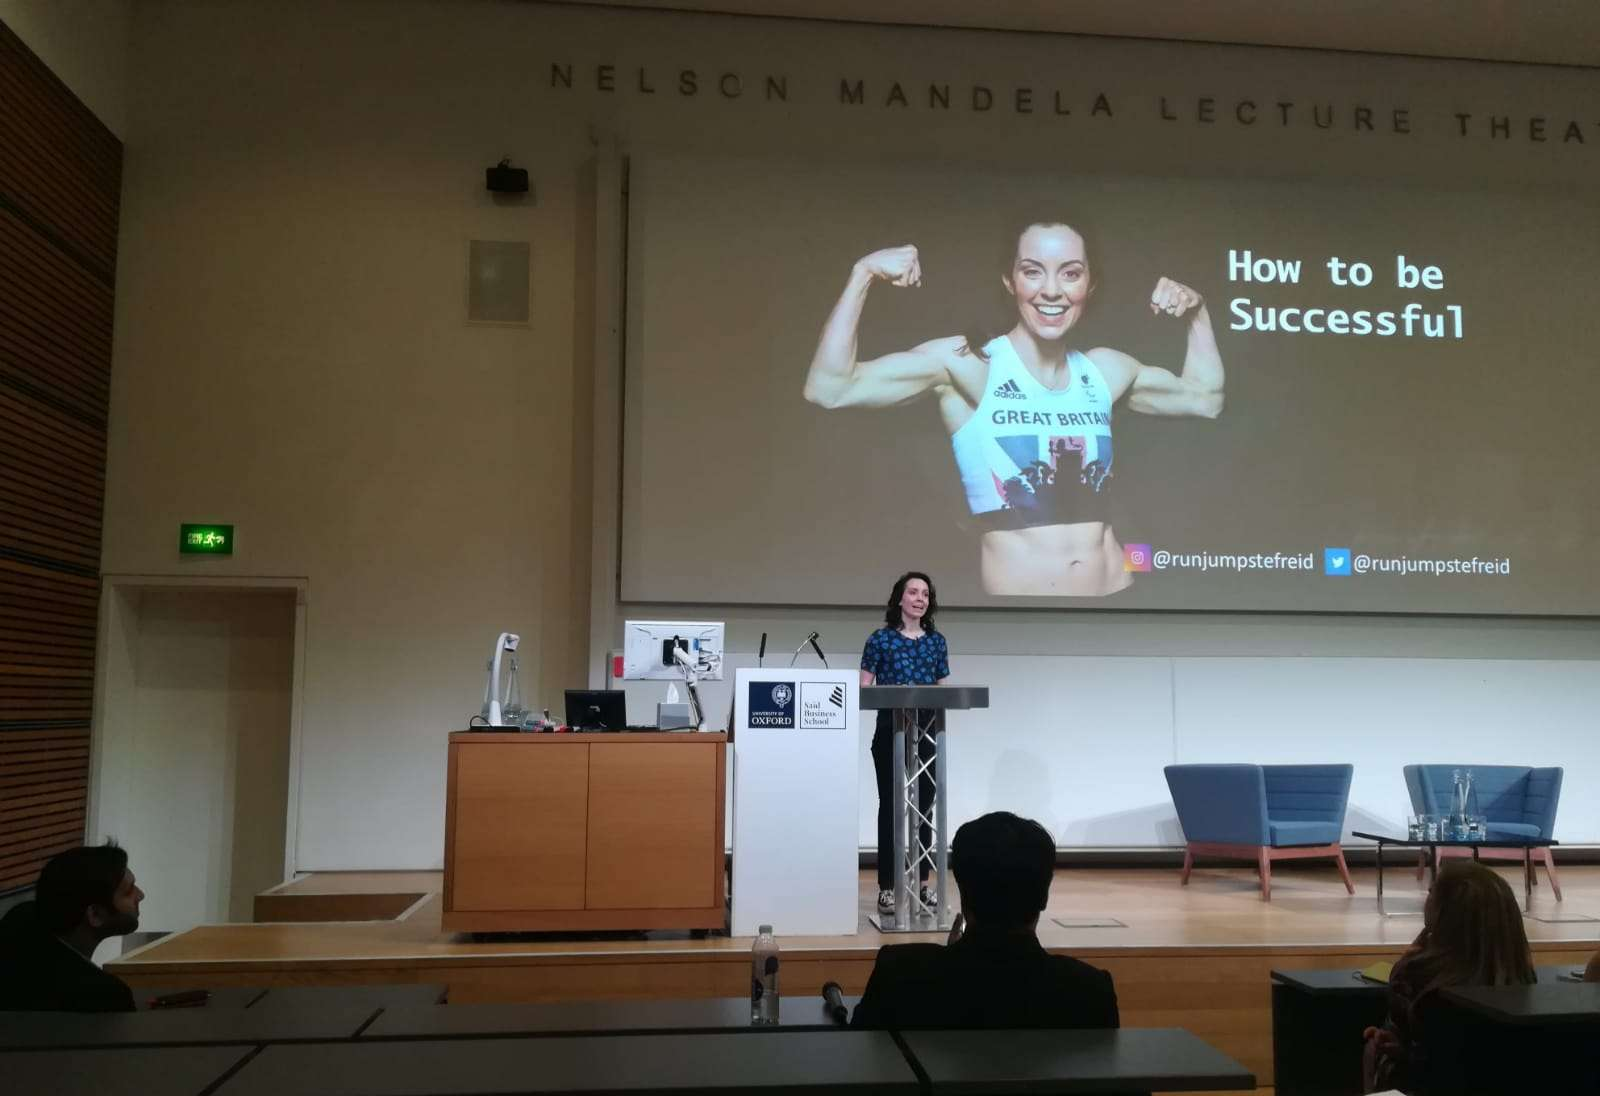 Euro-Med Monitor attends World Conference of Women Leaders at University of Oxford